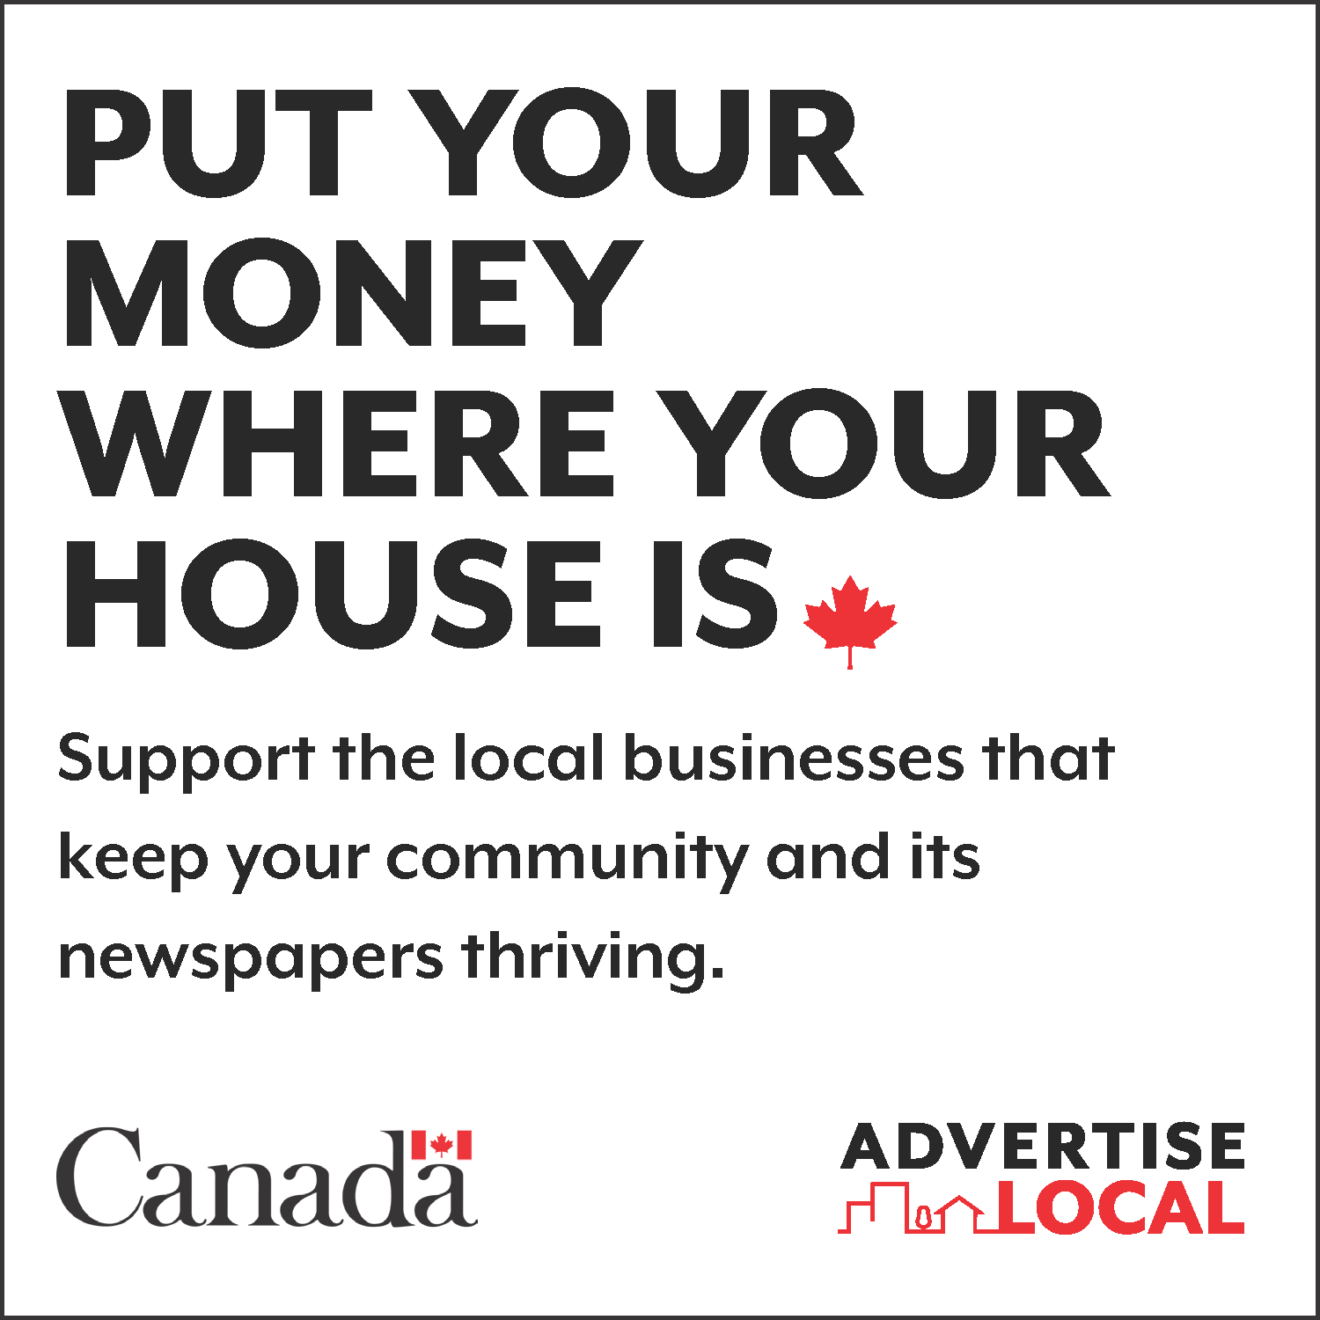 Community newspaper advertising: a tried and true way to generate and grow business